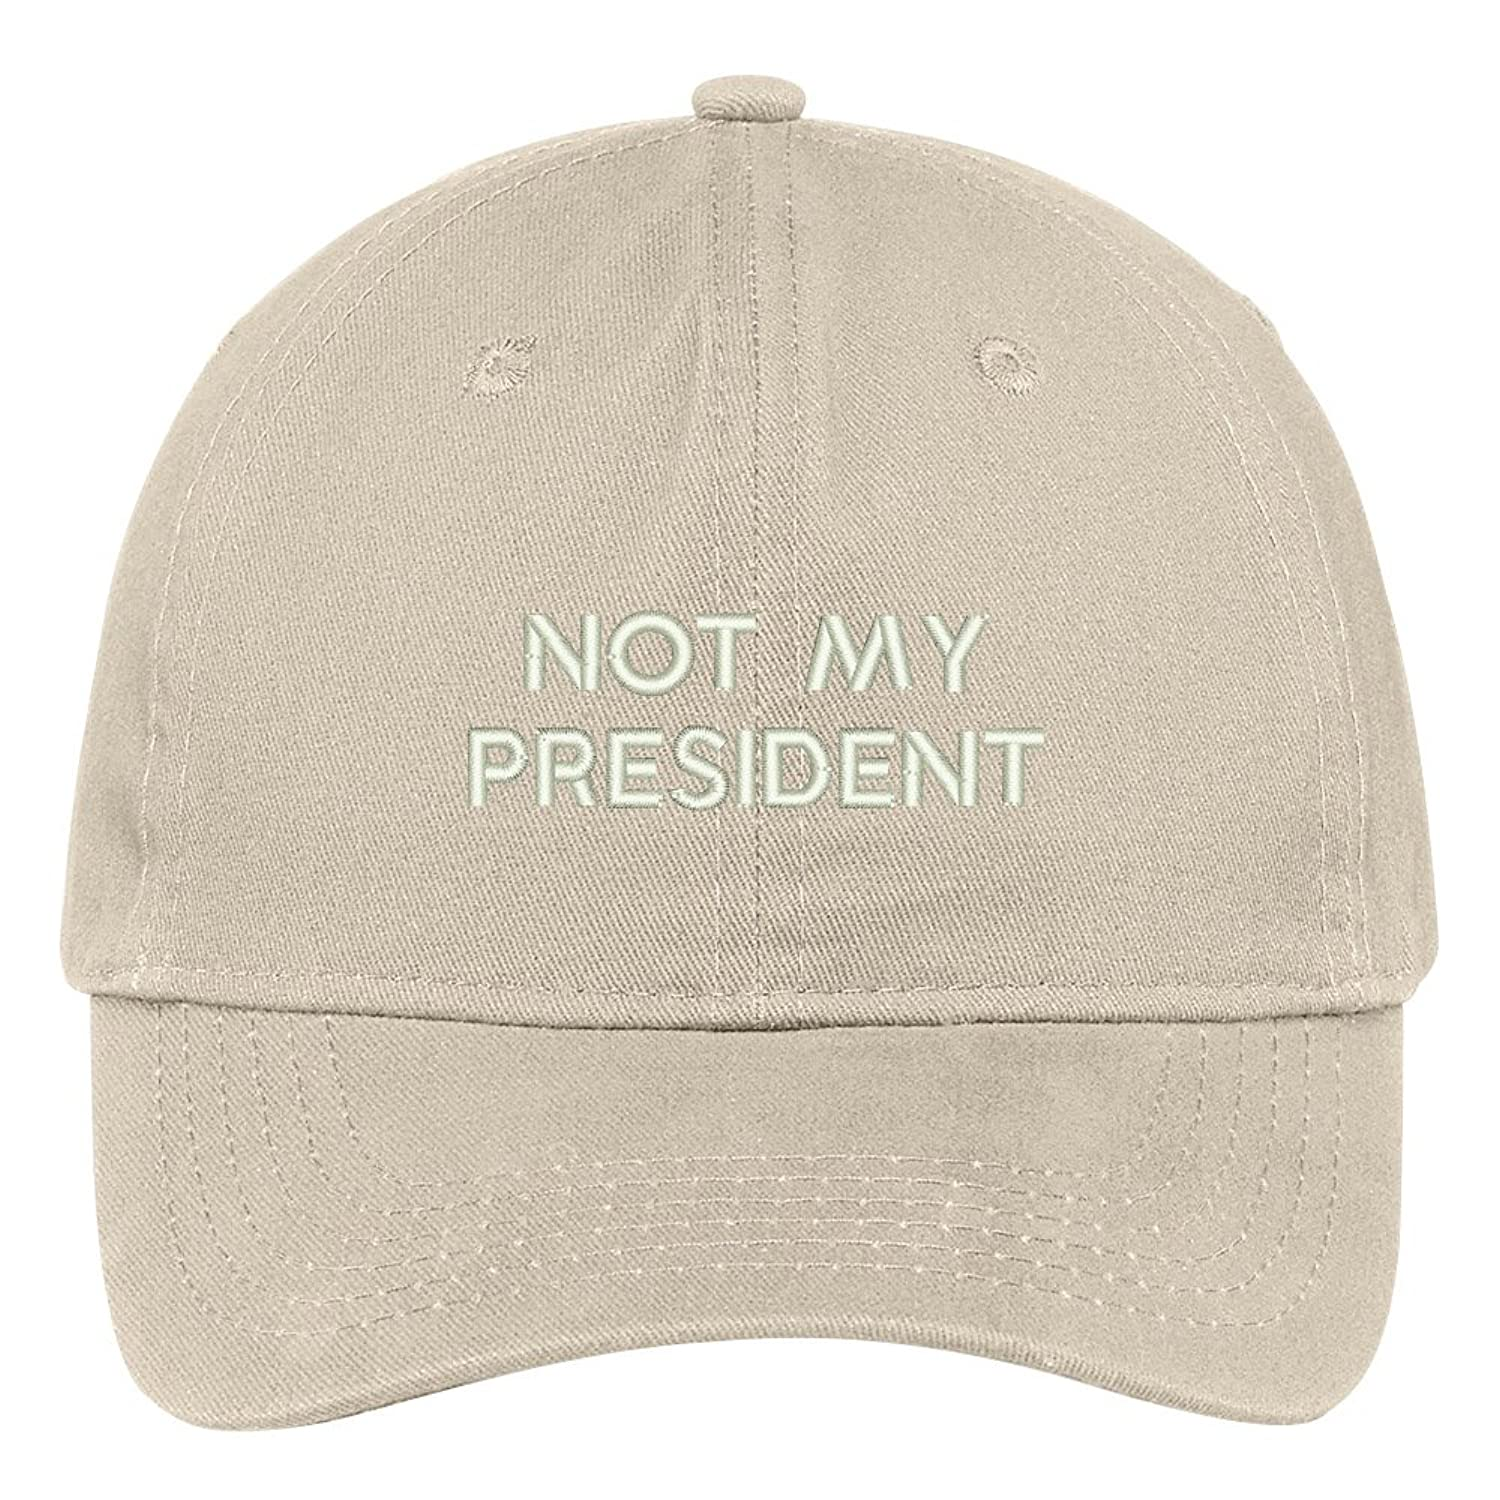 Not My President Embroidered Soft Low Profile Adjustable Cotton Cap